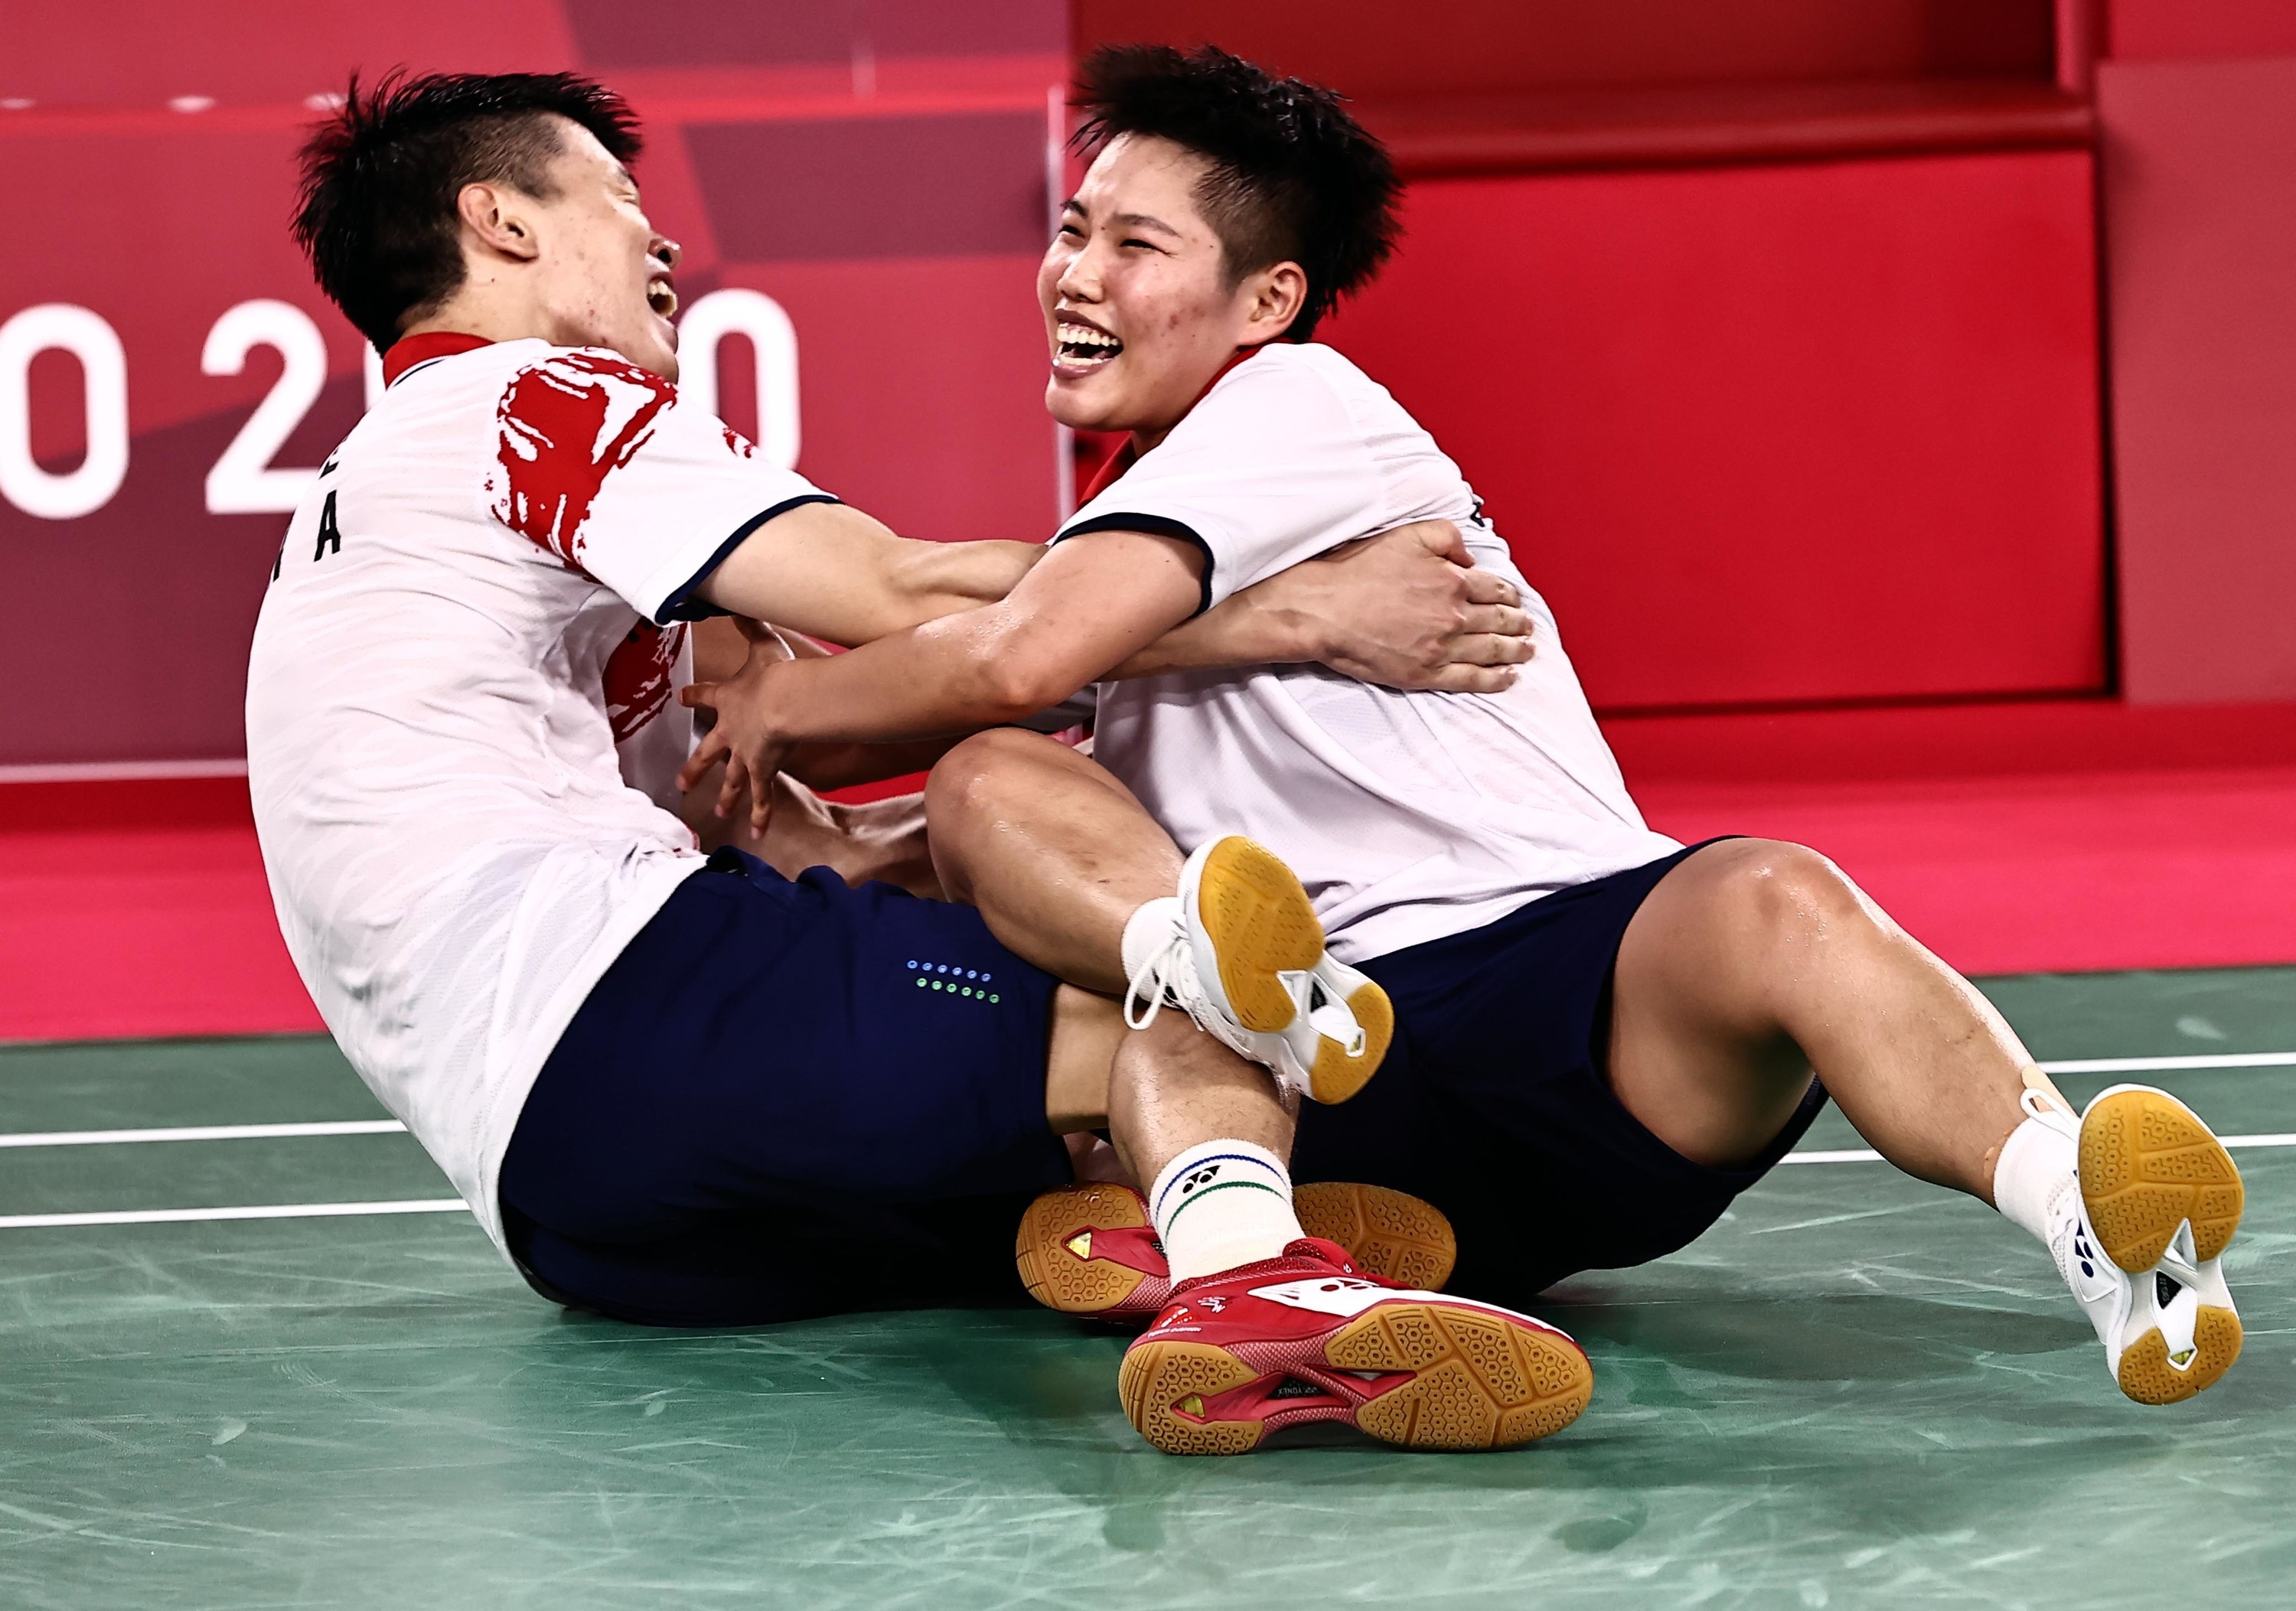 Two Olympic athletes smile and hold each other on the floor